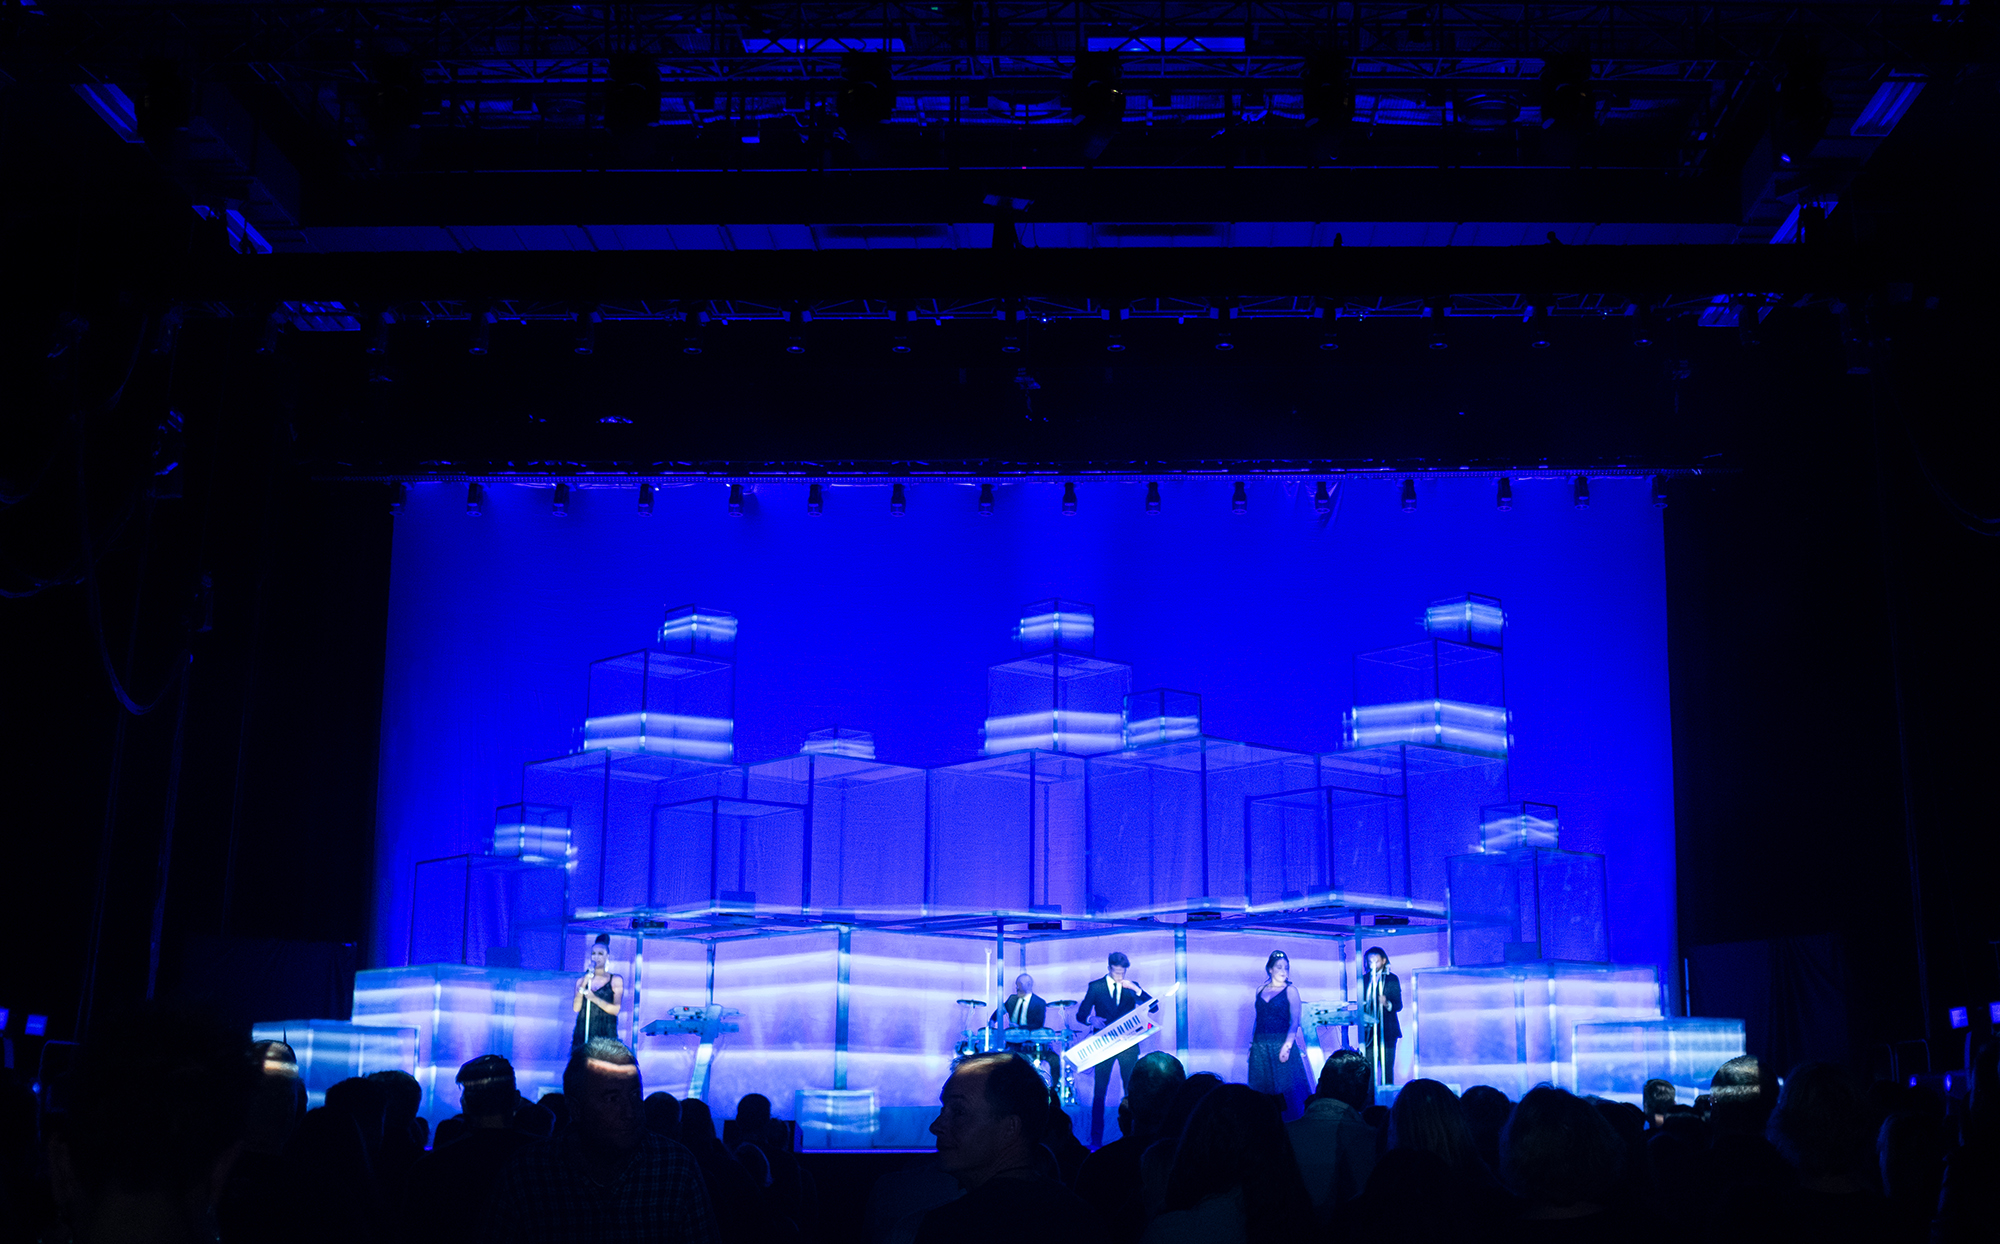 projection mapping The Human League concert tour design